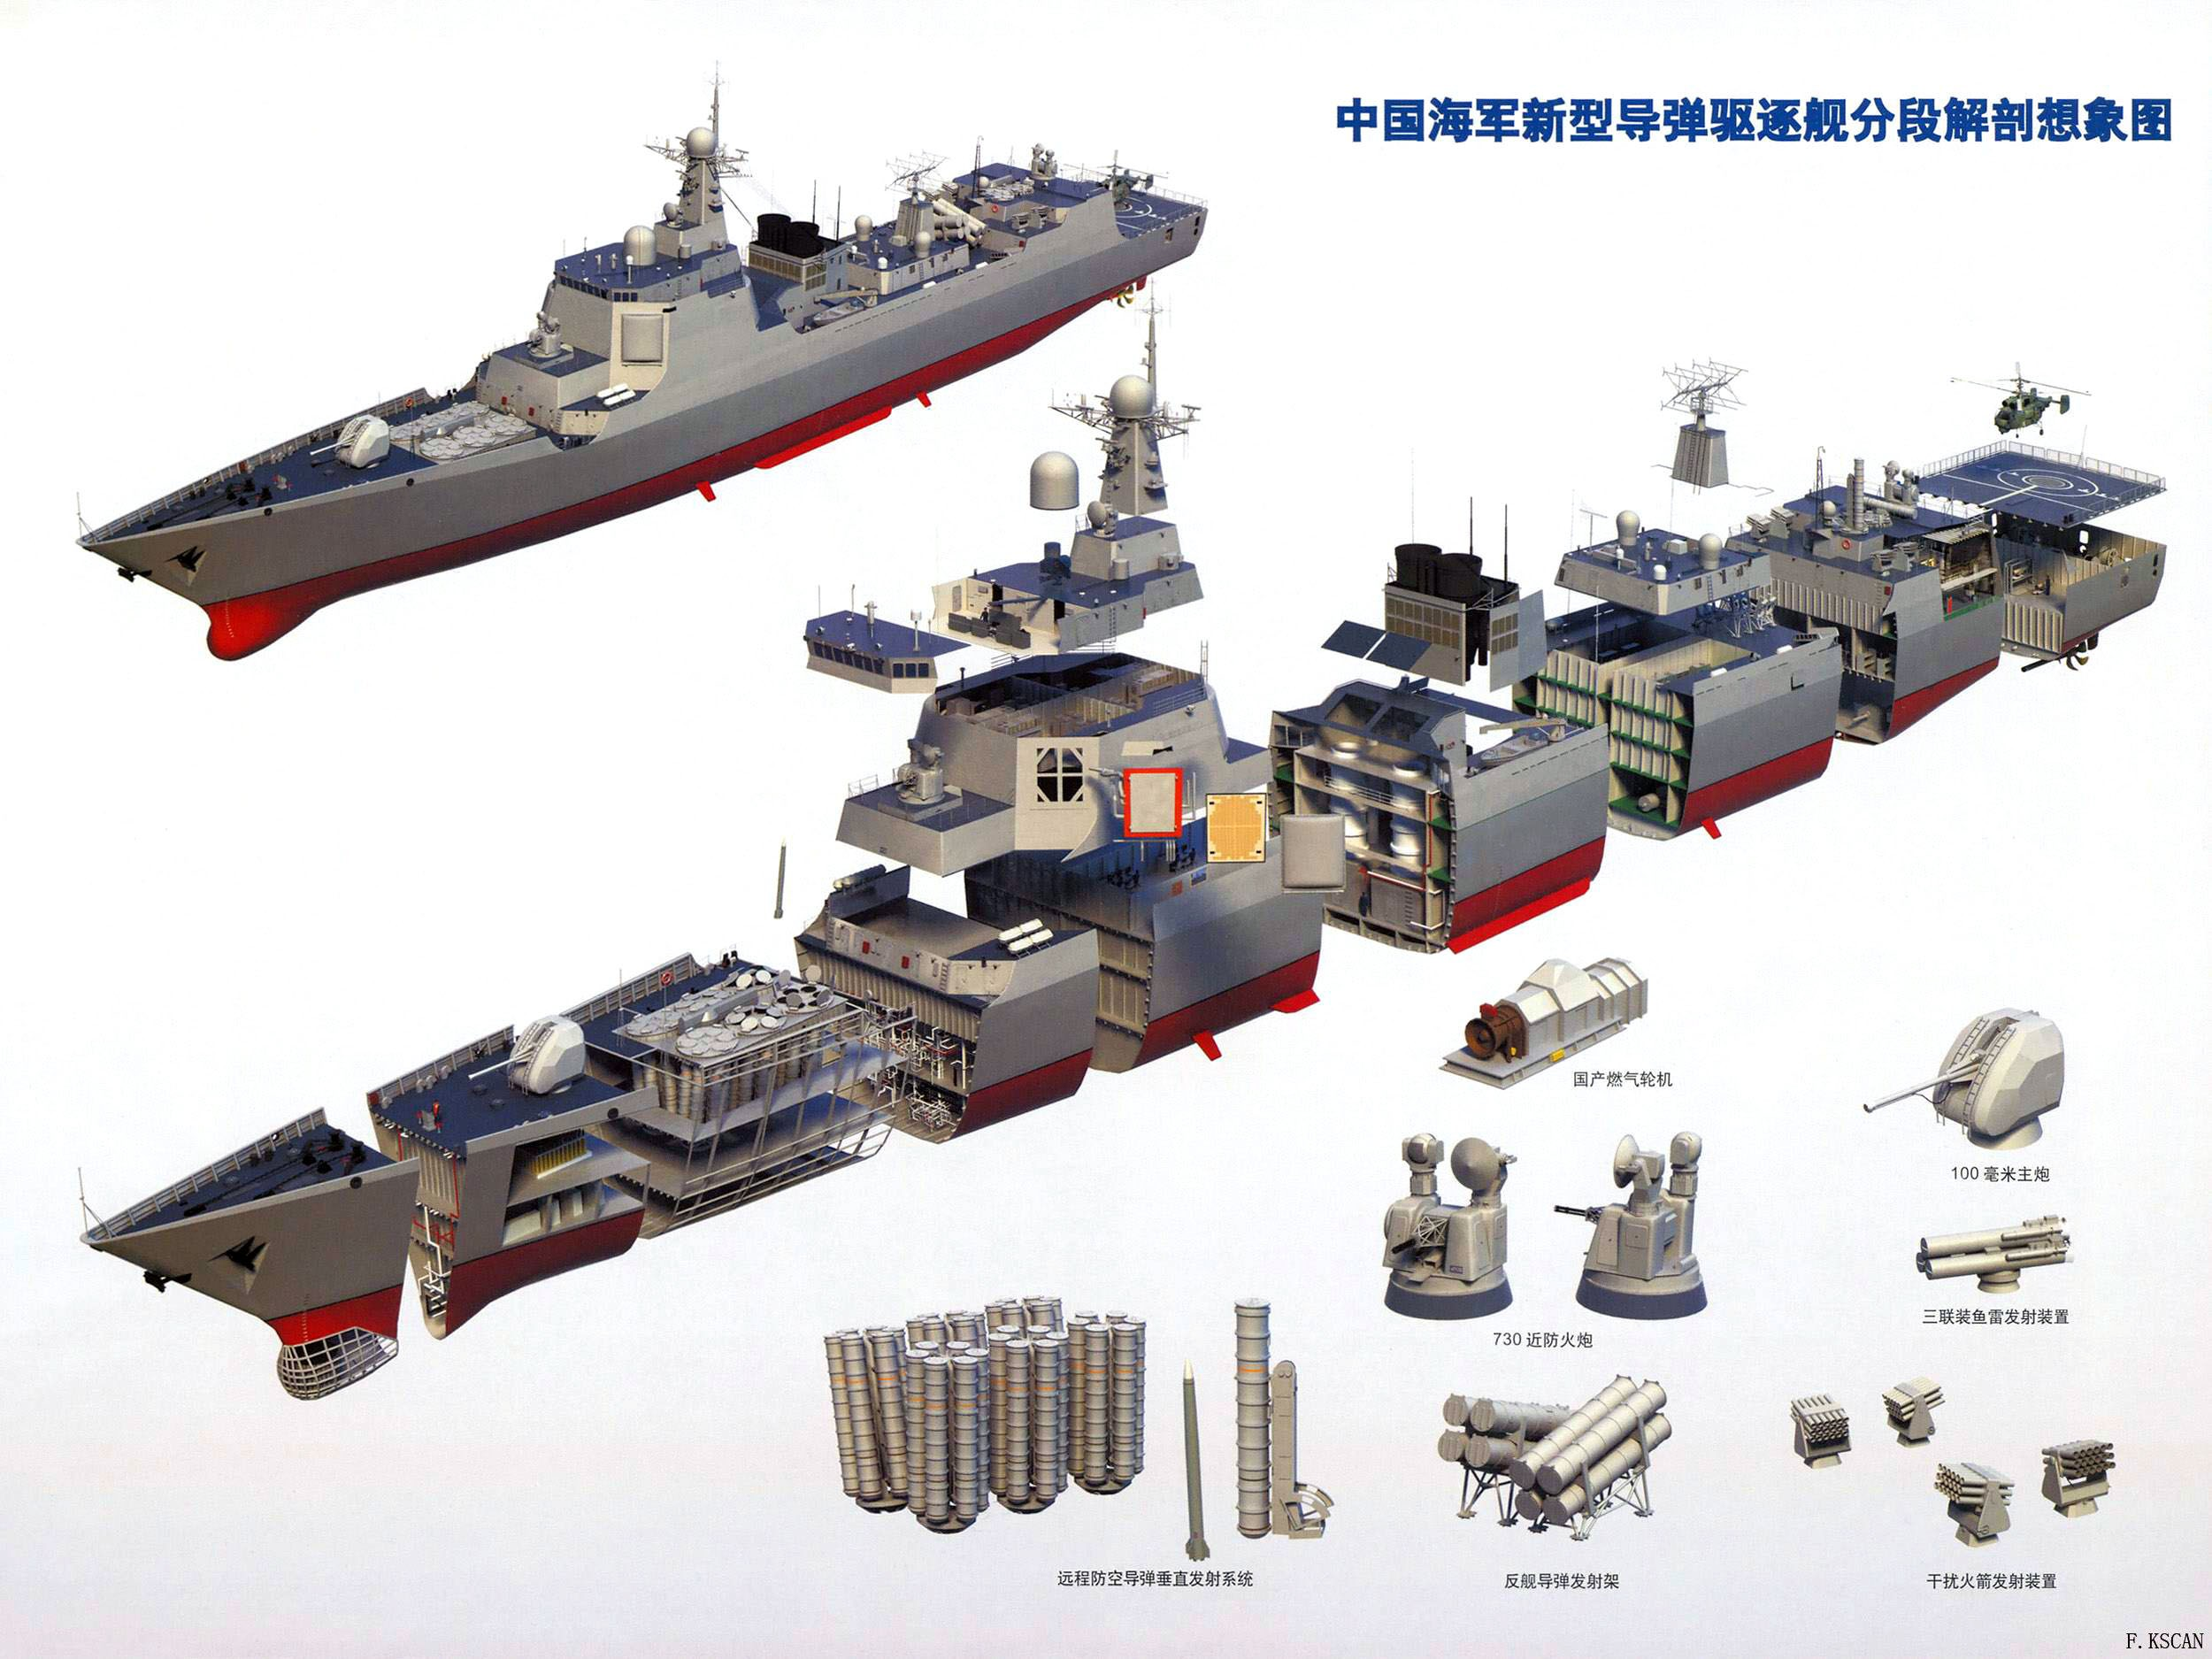 China Navy Missile Equipped Destroyer Sectional View